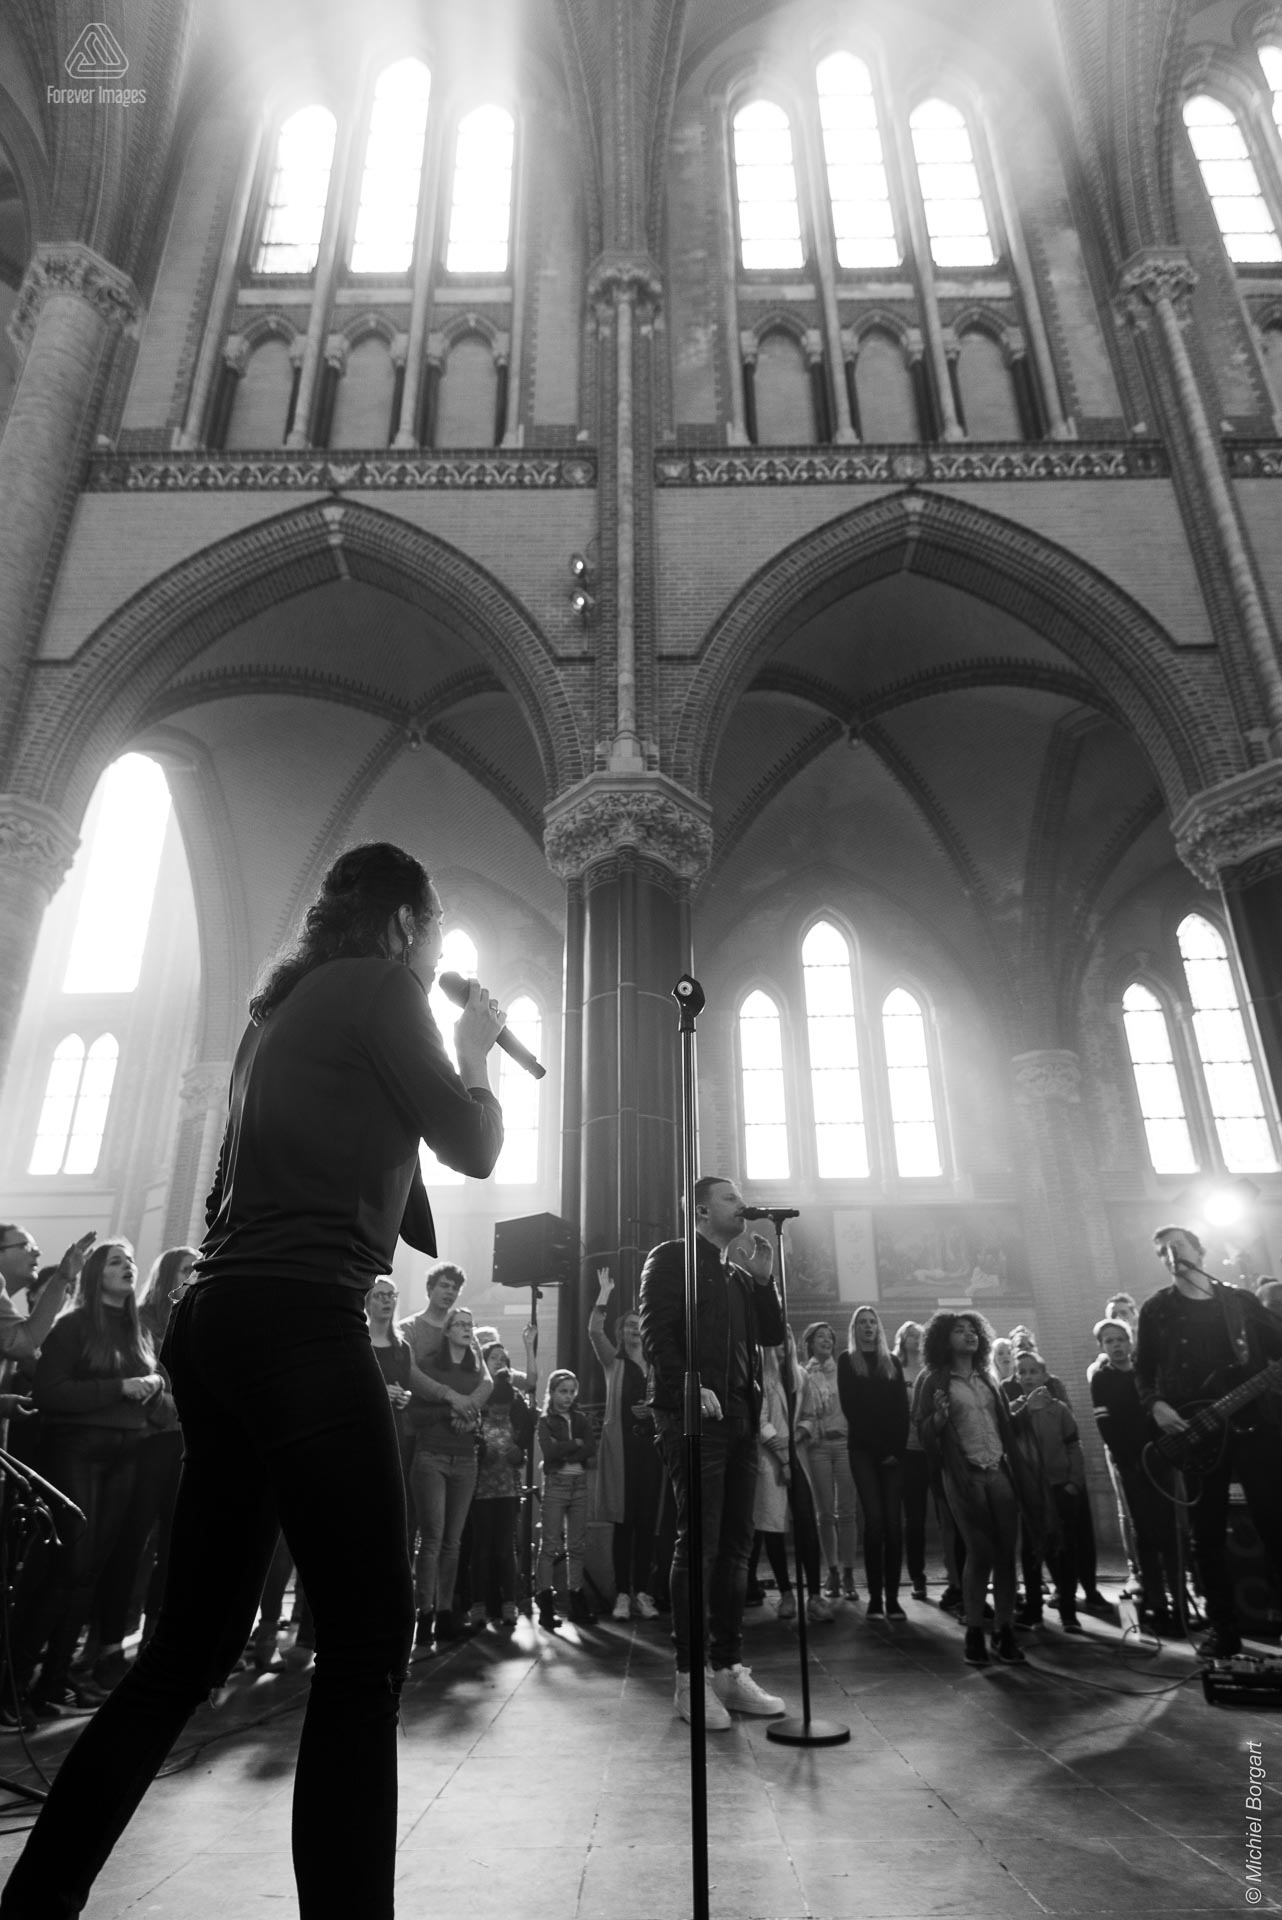 Black and white photo neo-gothic worship | InSalvation Gouwekerk Gouda Sifra Jafeth Bekx Andy Stuijfzand | Photographer Michiel Borgart - Forever Images.